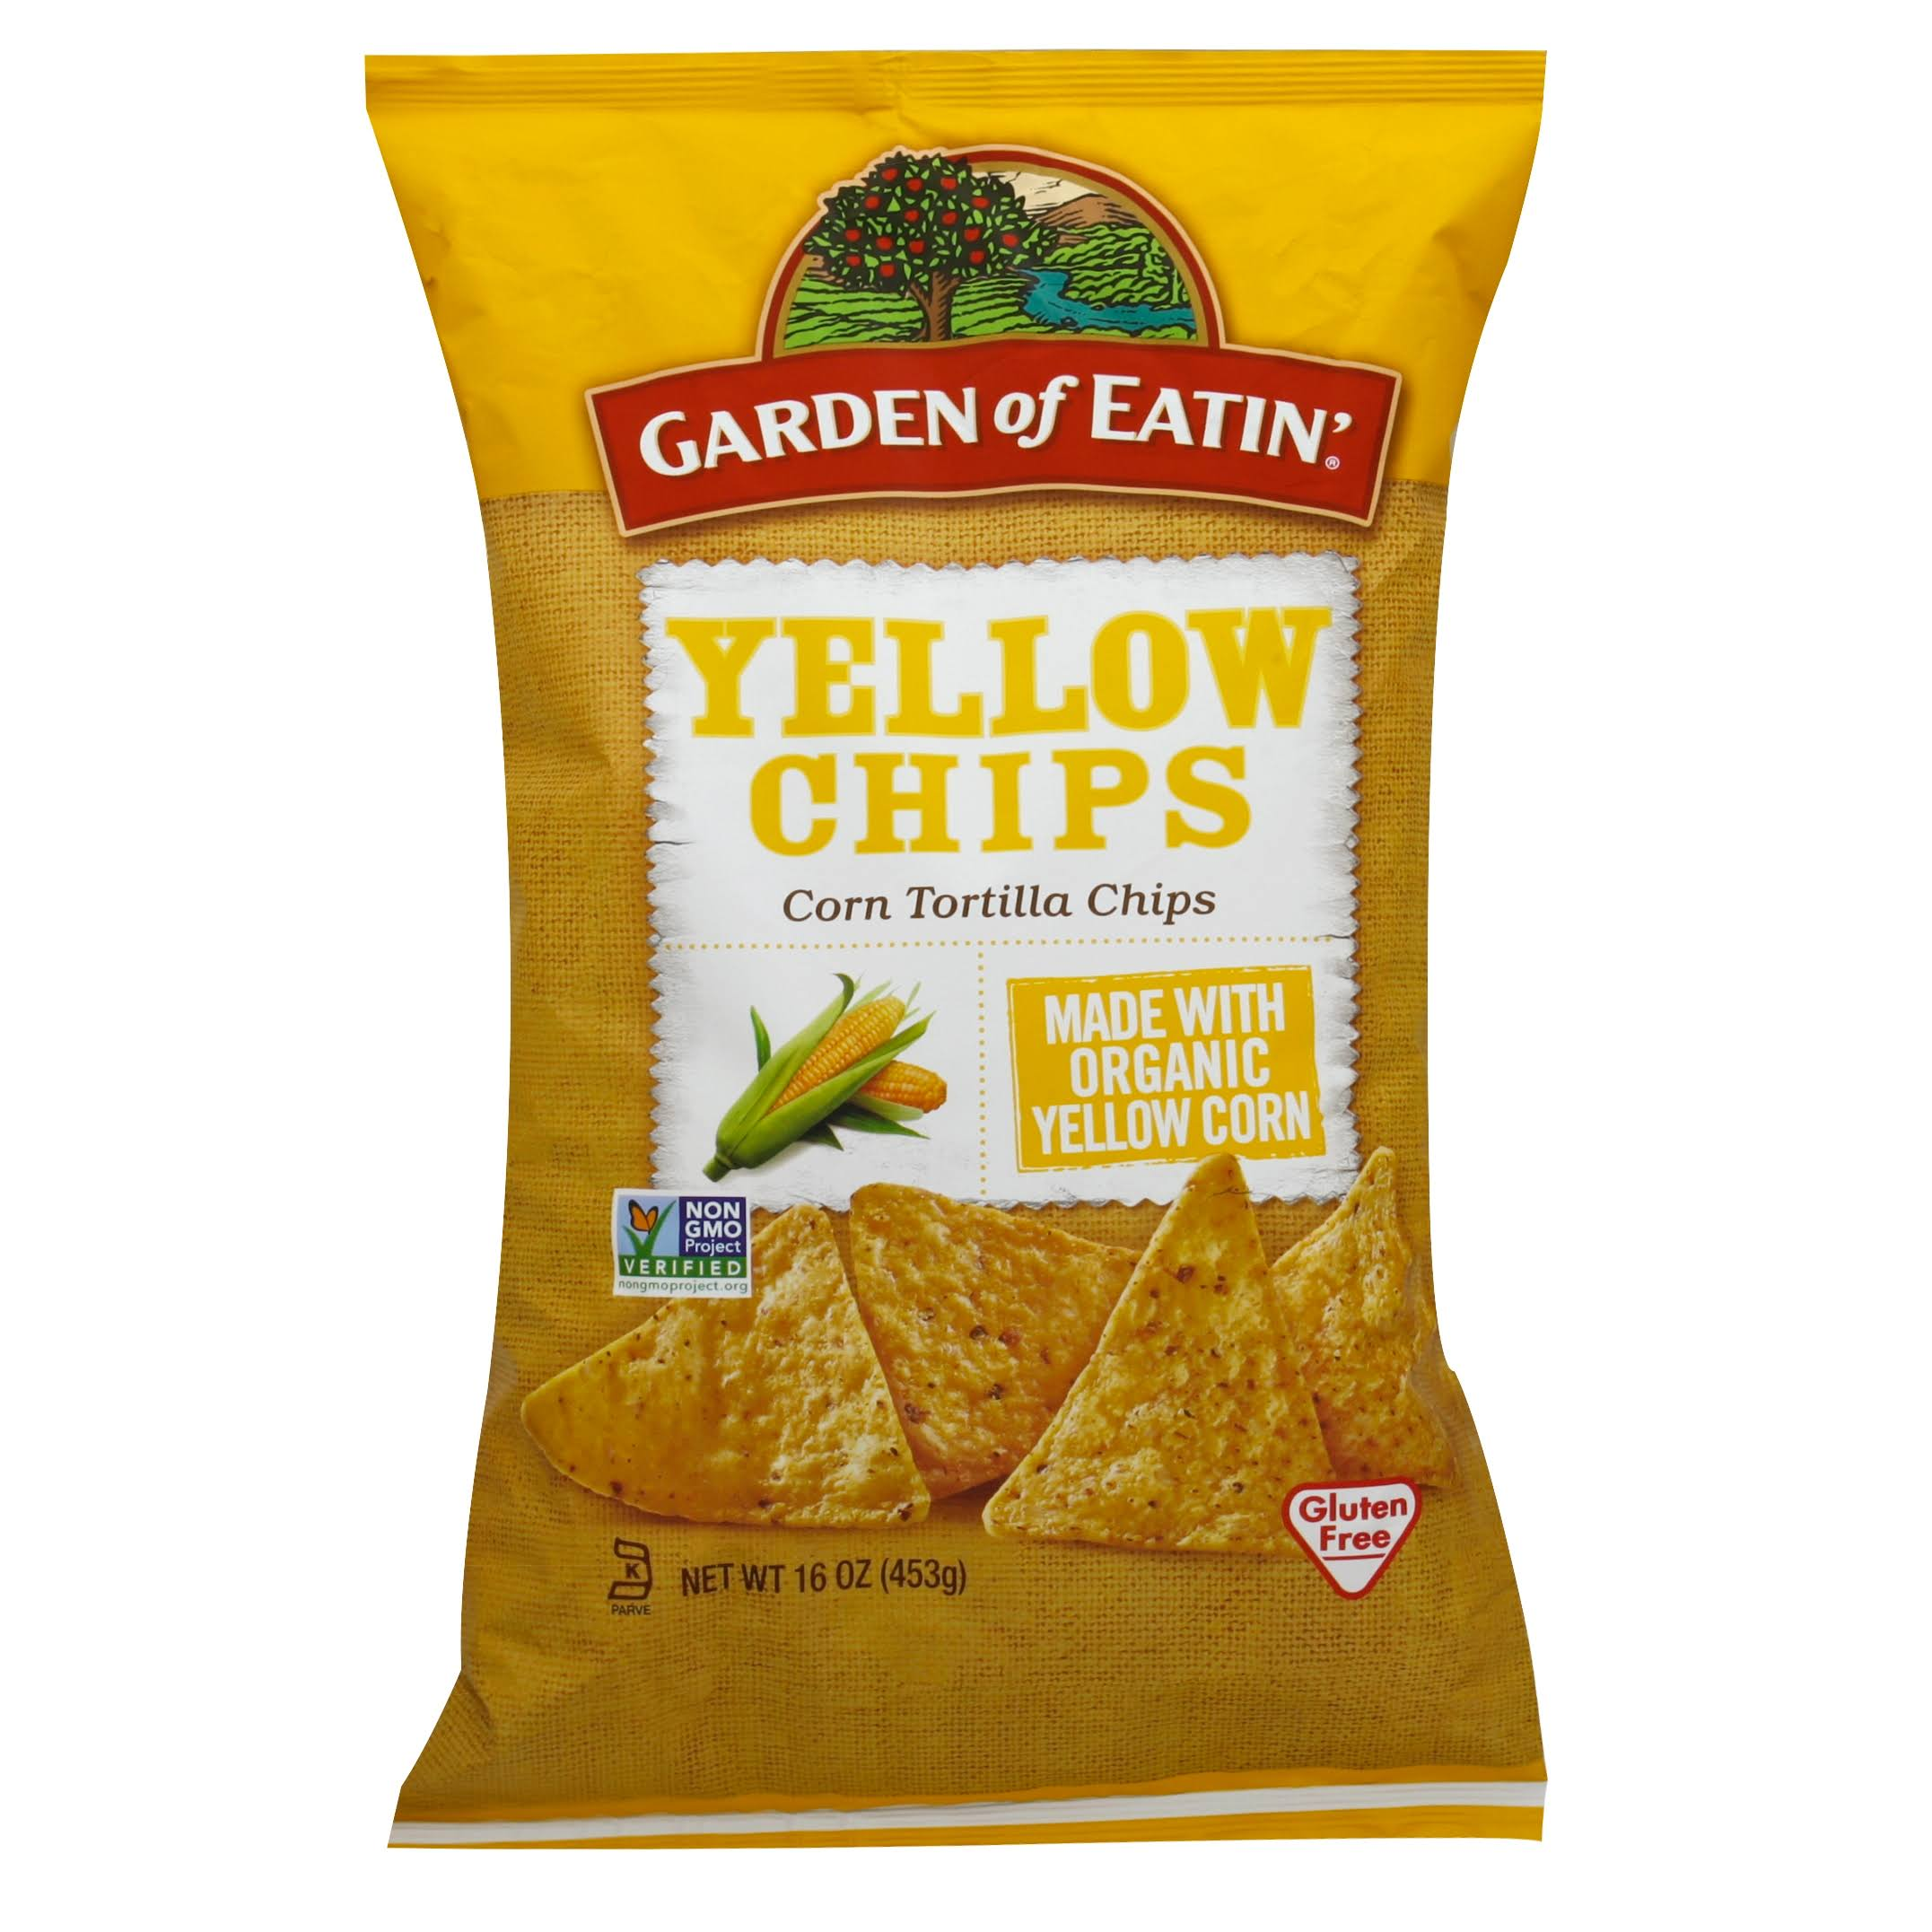 Garden of Eatin' Yellow Chips Corn Tortilla Chips - 16 oz